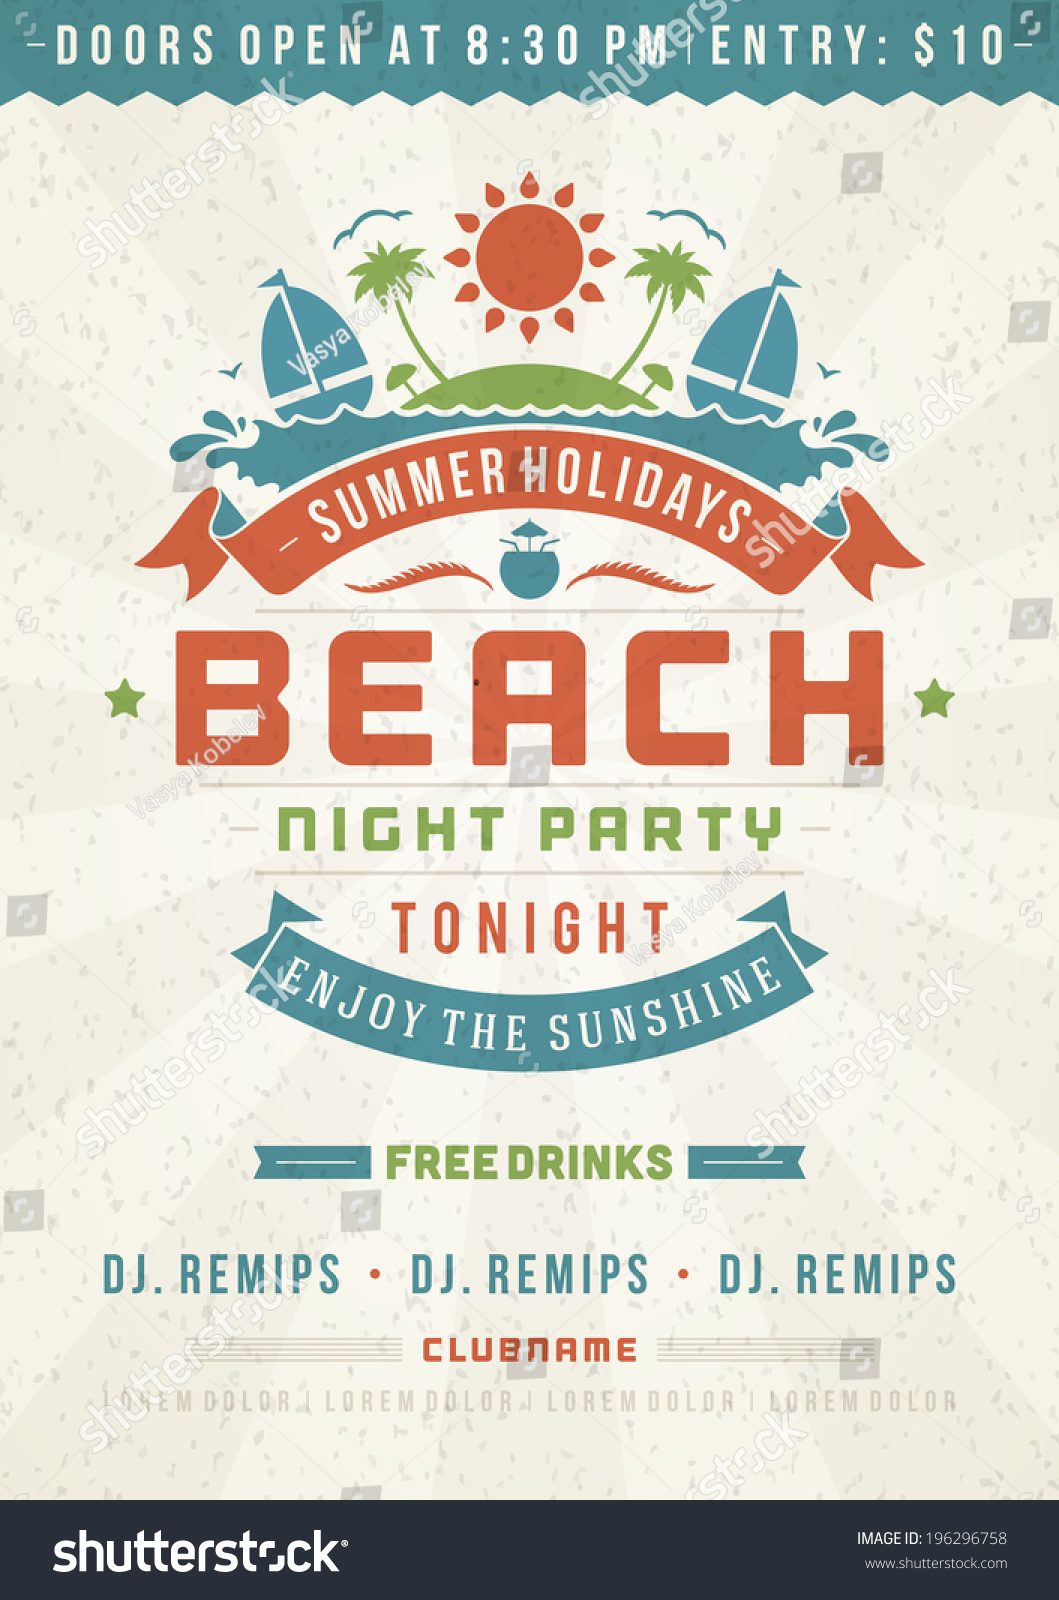 retro summer party design poster flyer stock vector 196296758 retro summer party design poster or flyer night club event typography vector template illustration